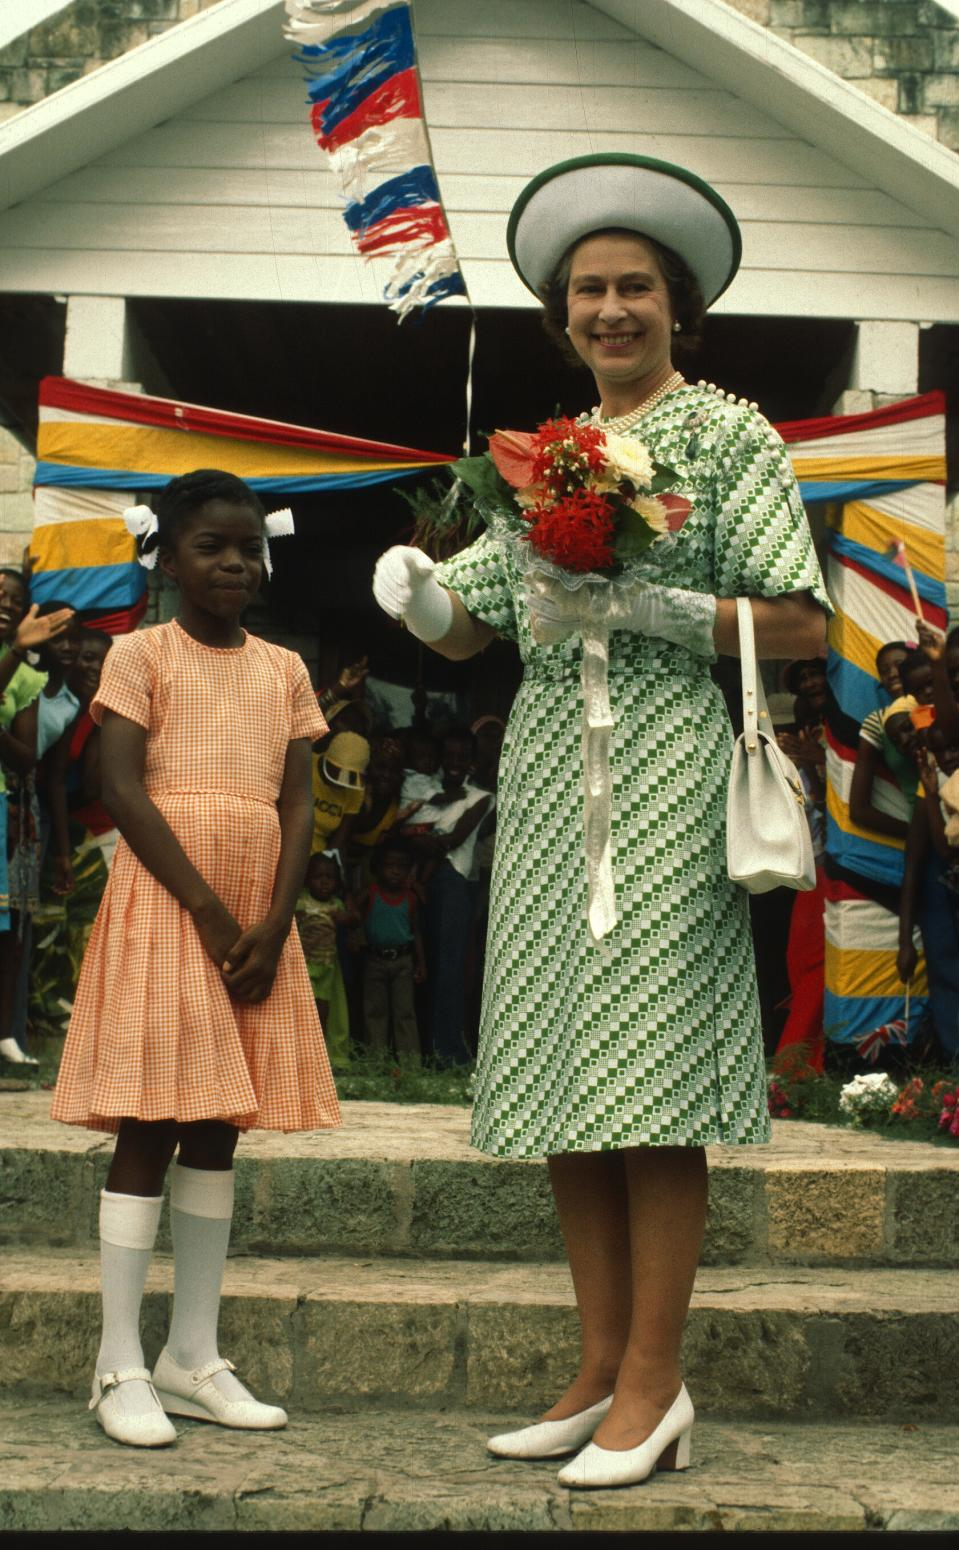 BARBADOS - NOVEMBER 01: Queen Elizabeth ll smiles with a young girl in Barbados on November 01, 1977 in Barbados. (Photo by Anwar Hussein/Getty Images)